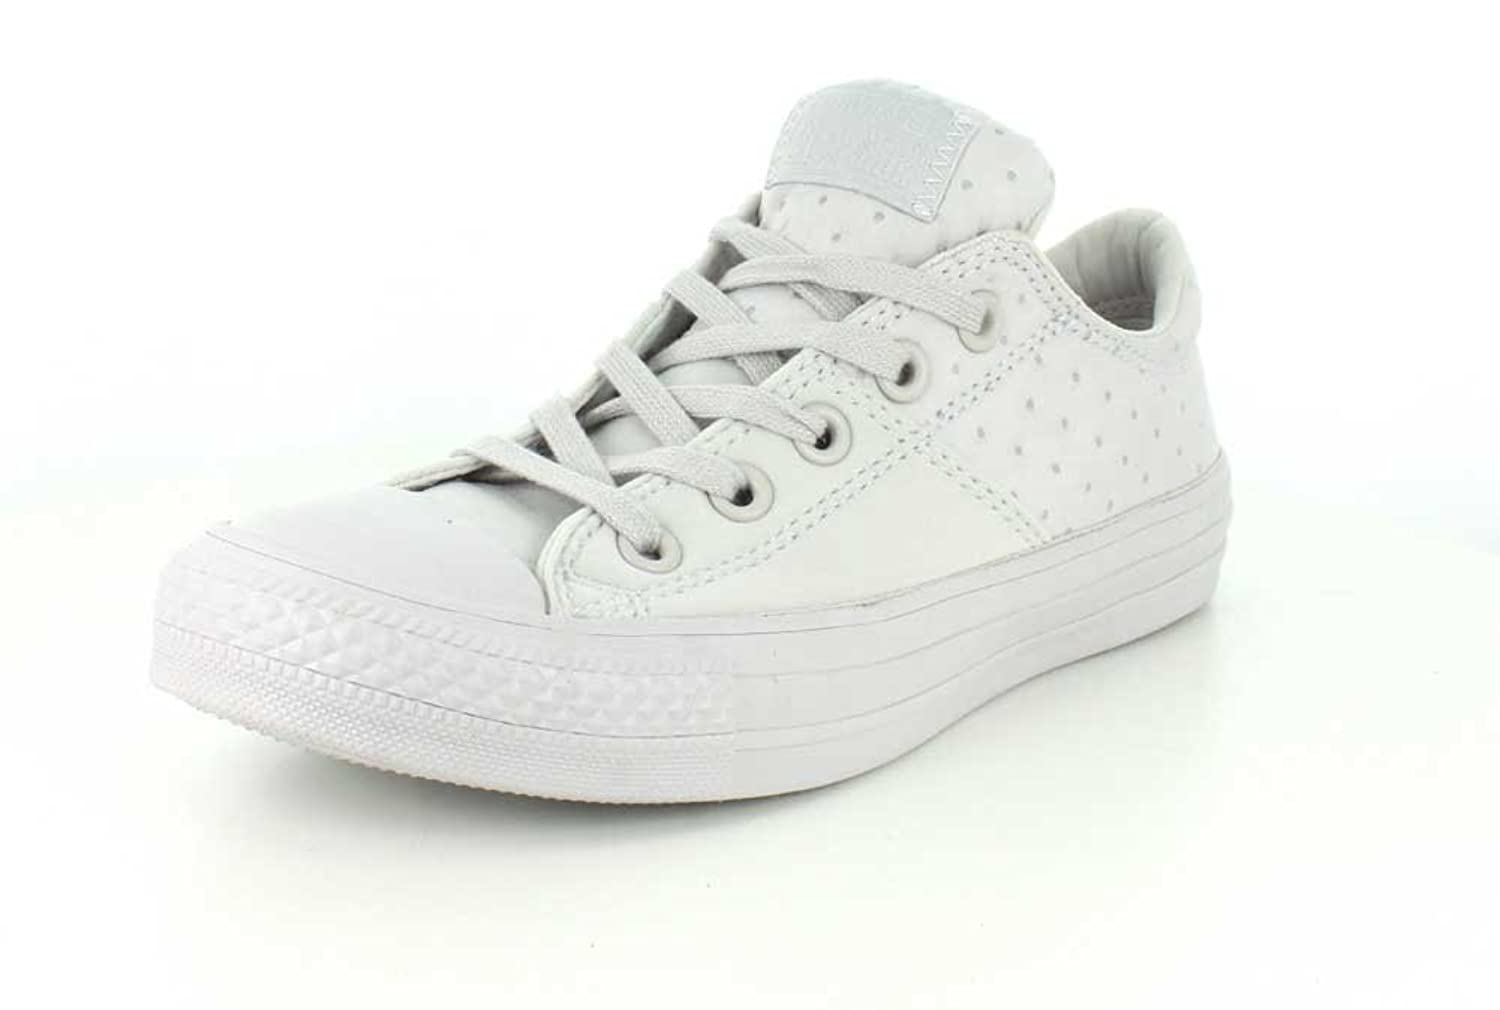 Converse Womens Chuck Taylor All Star Madison Dotted Low Top Sneaker